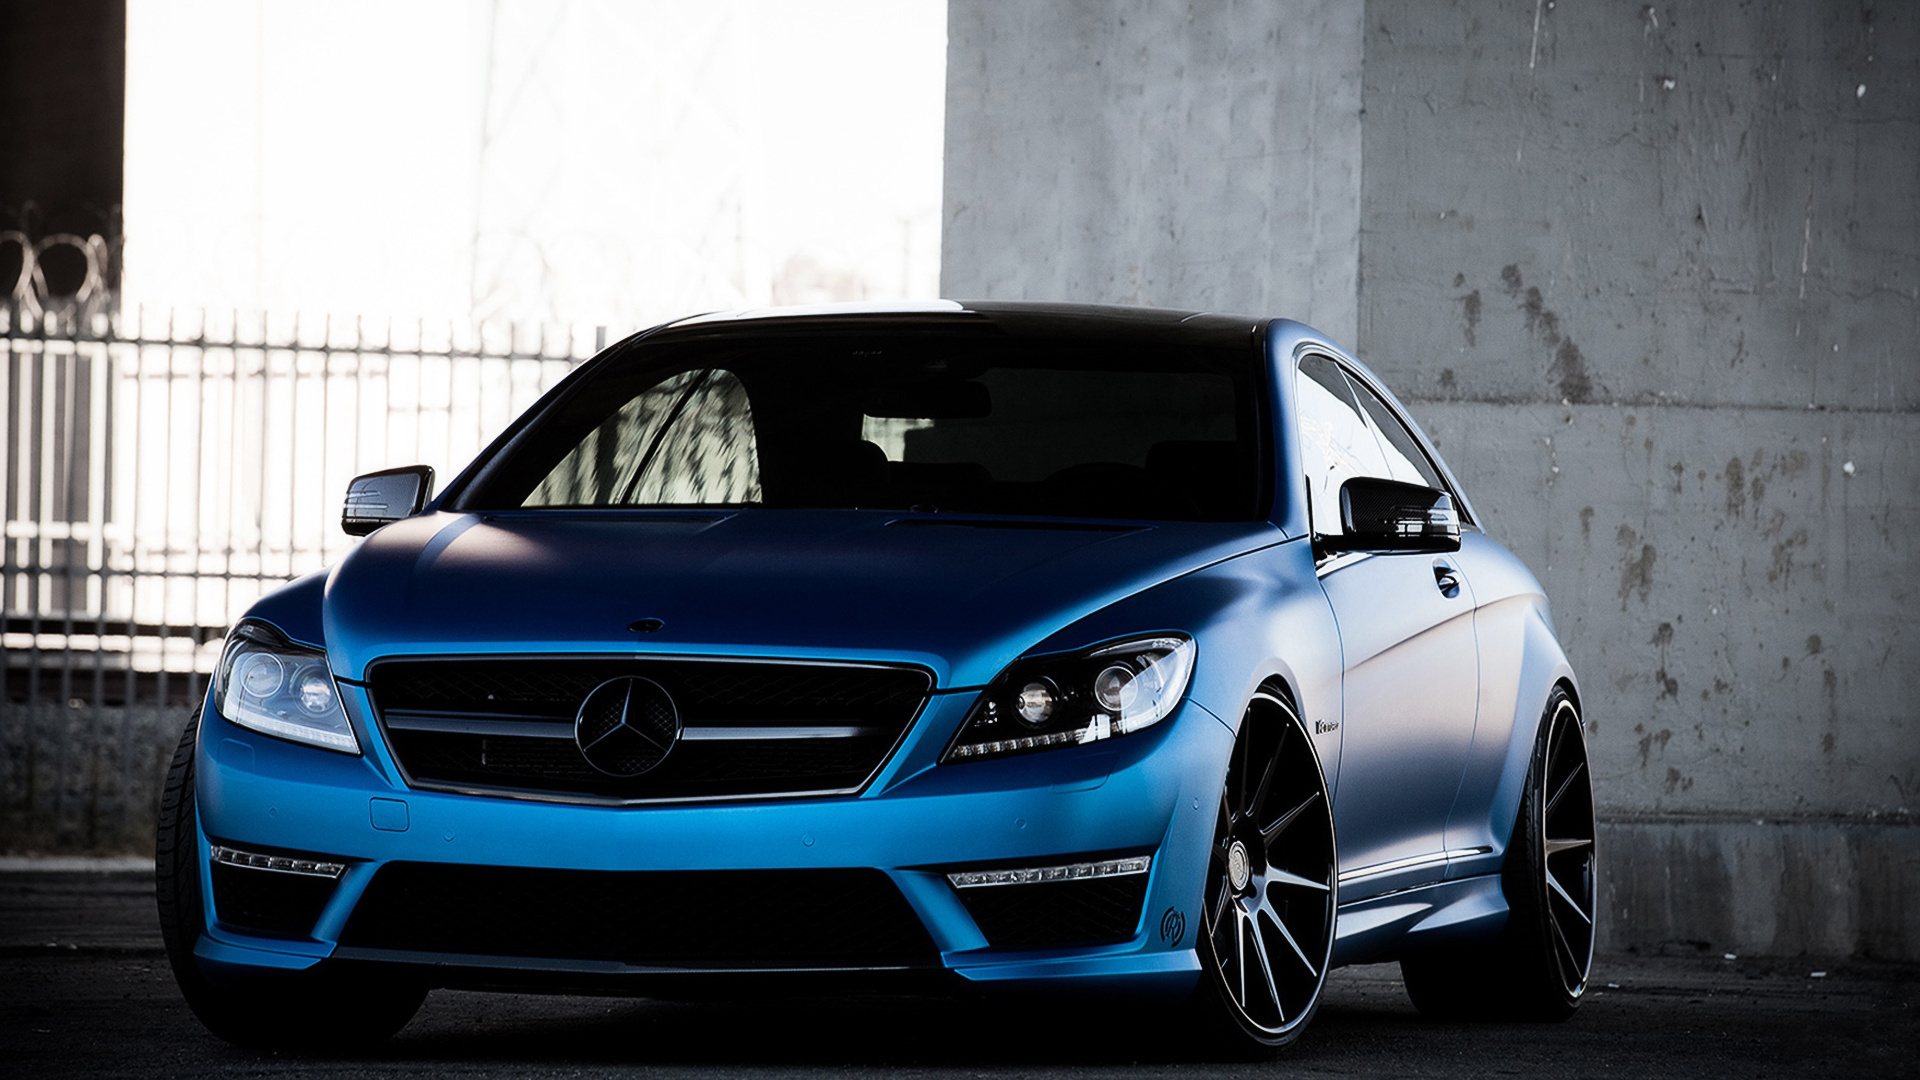 1 Mercedes Benz Cl63 Amg HD Wallpapers | Backgrounds - Wallpaper Abyss